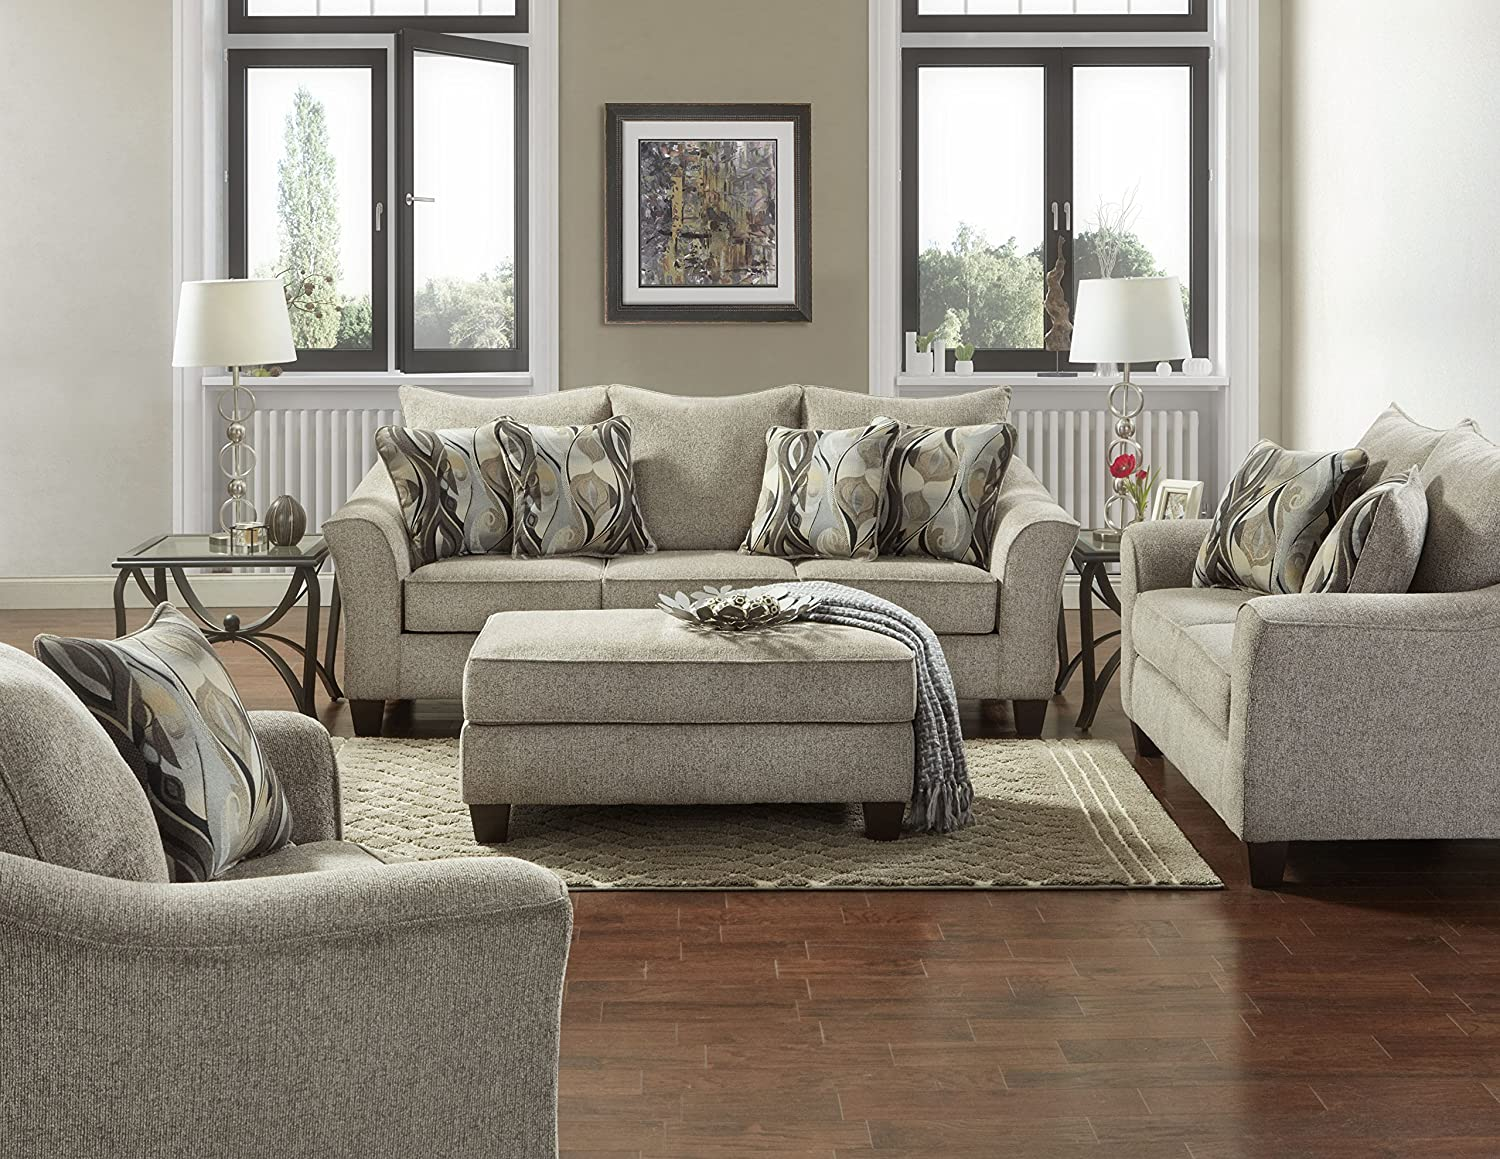 Awe Inspiring Roundhill Furniture Laf7703 02 01 05Cp Camero Platinum Fabric 4 Piece Living Room Set Home Interior And Landscaping Ponolsignezvosmurscom